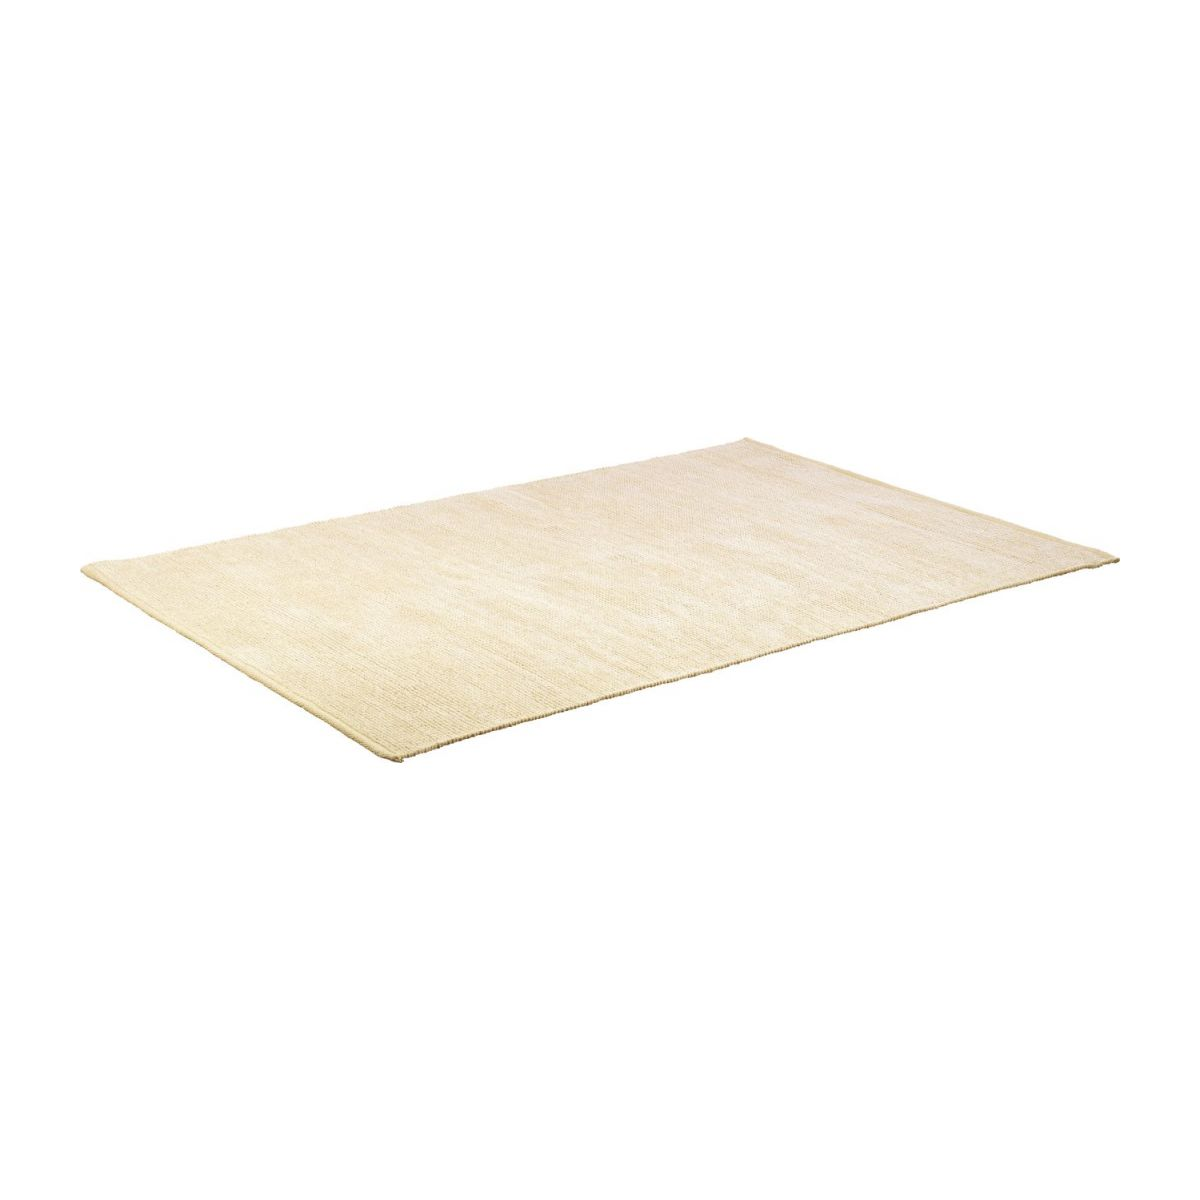 Large textured cotton rug n°1